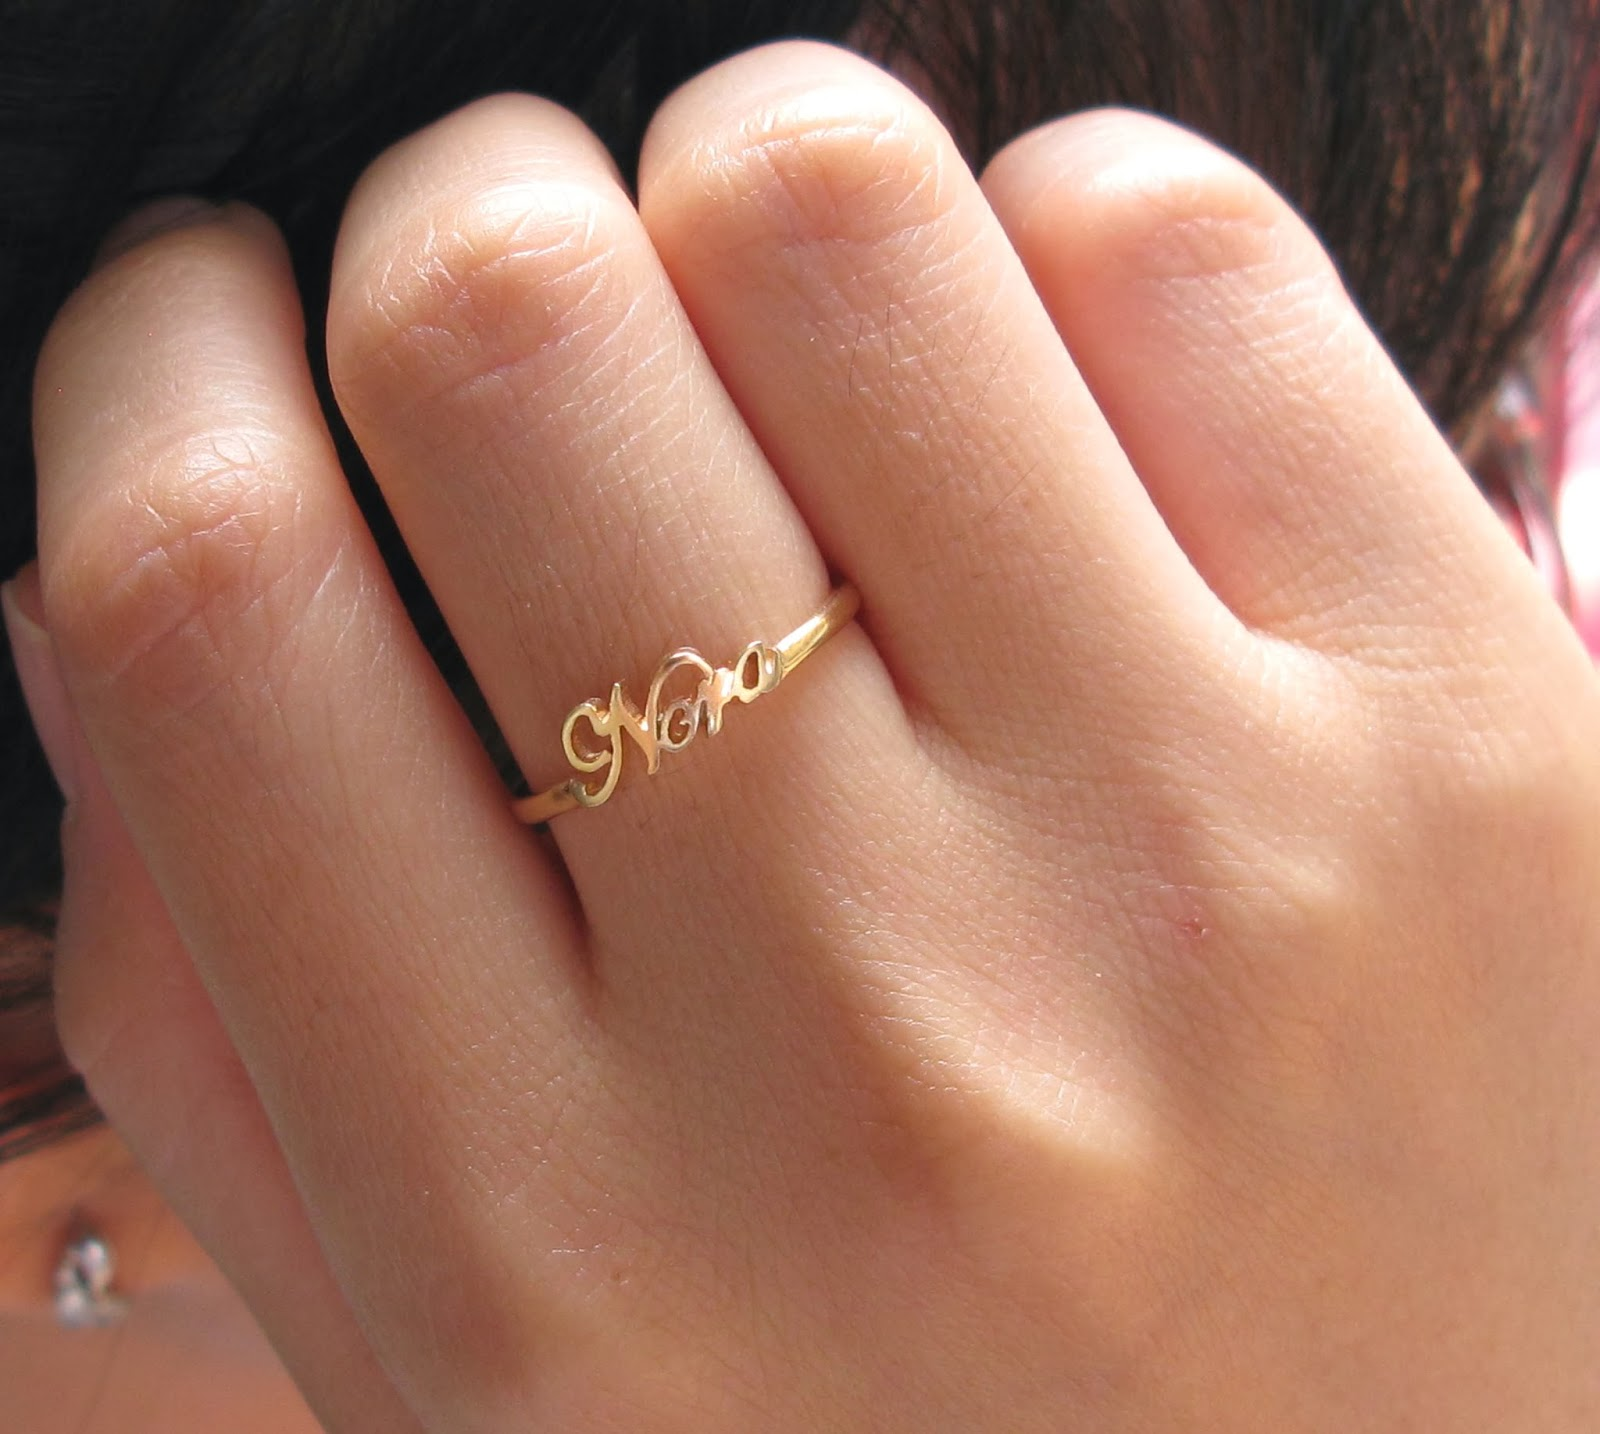 Bestyle Jewelry Personalized Birthday Gifts For Mom India Lamoureph